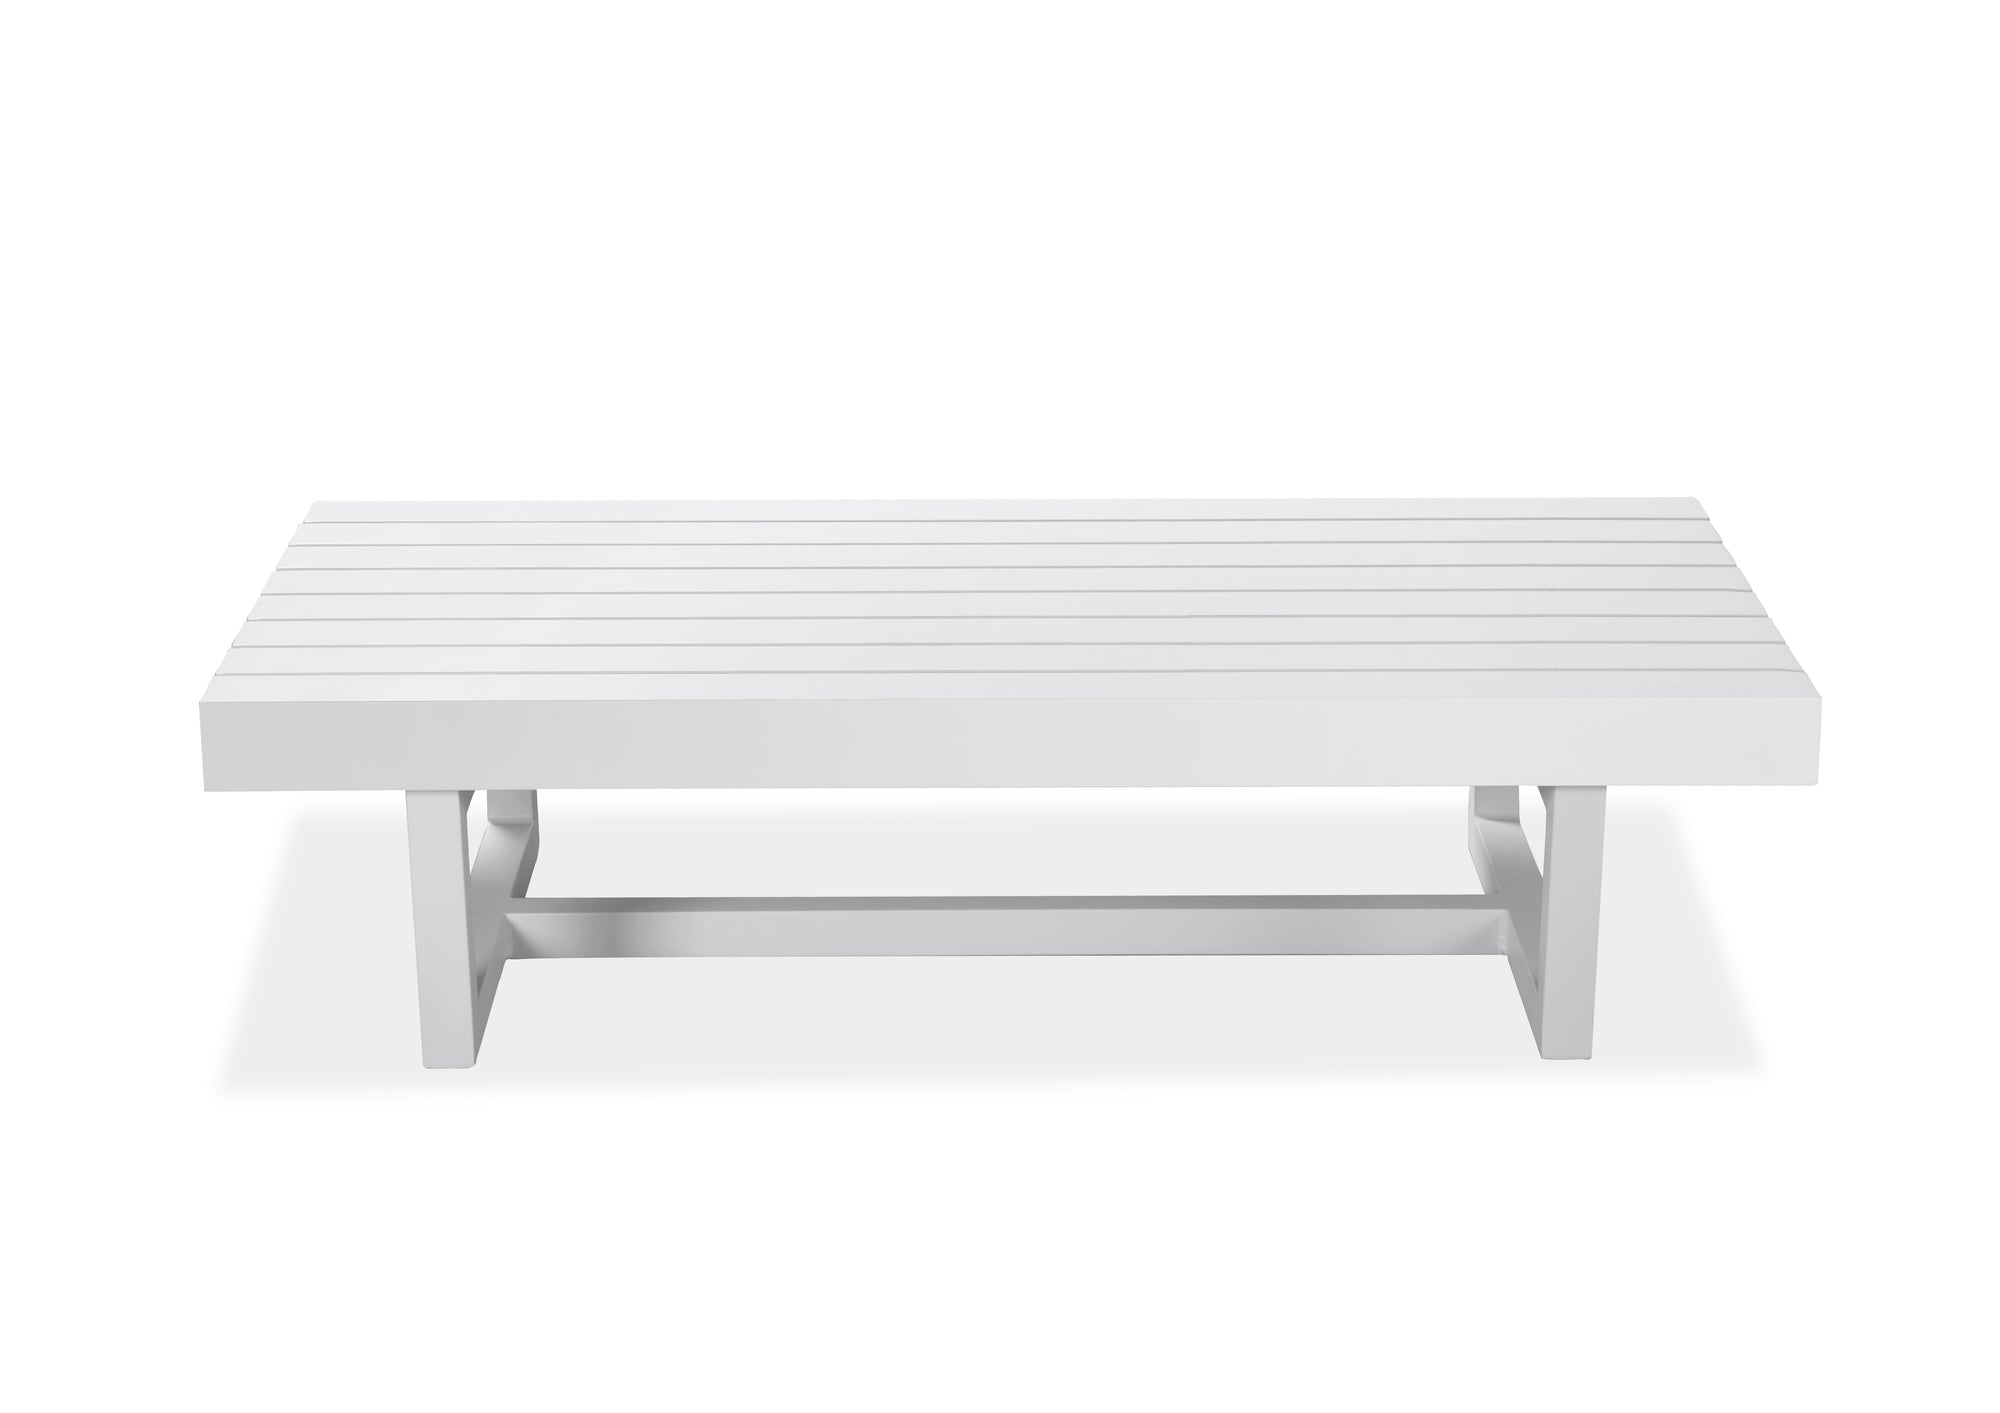 Whiteline Modern Living-Ursula Outdoor Coffee Table-Outdoor Coffee Tables-MODTEMPO